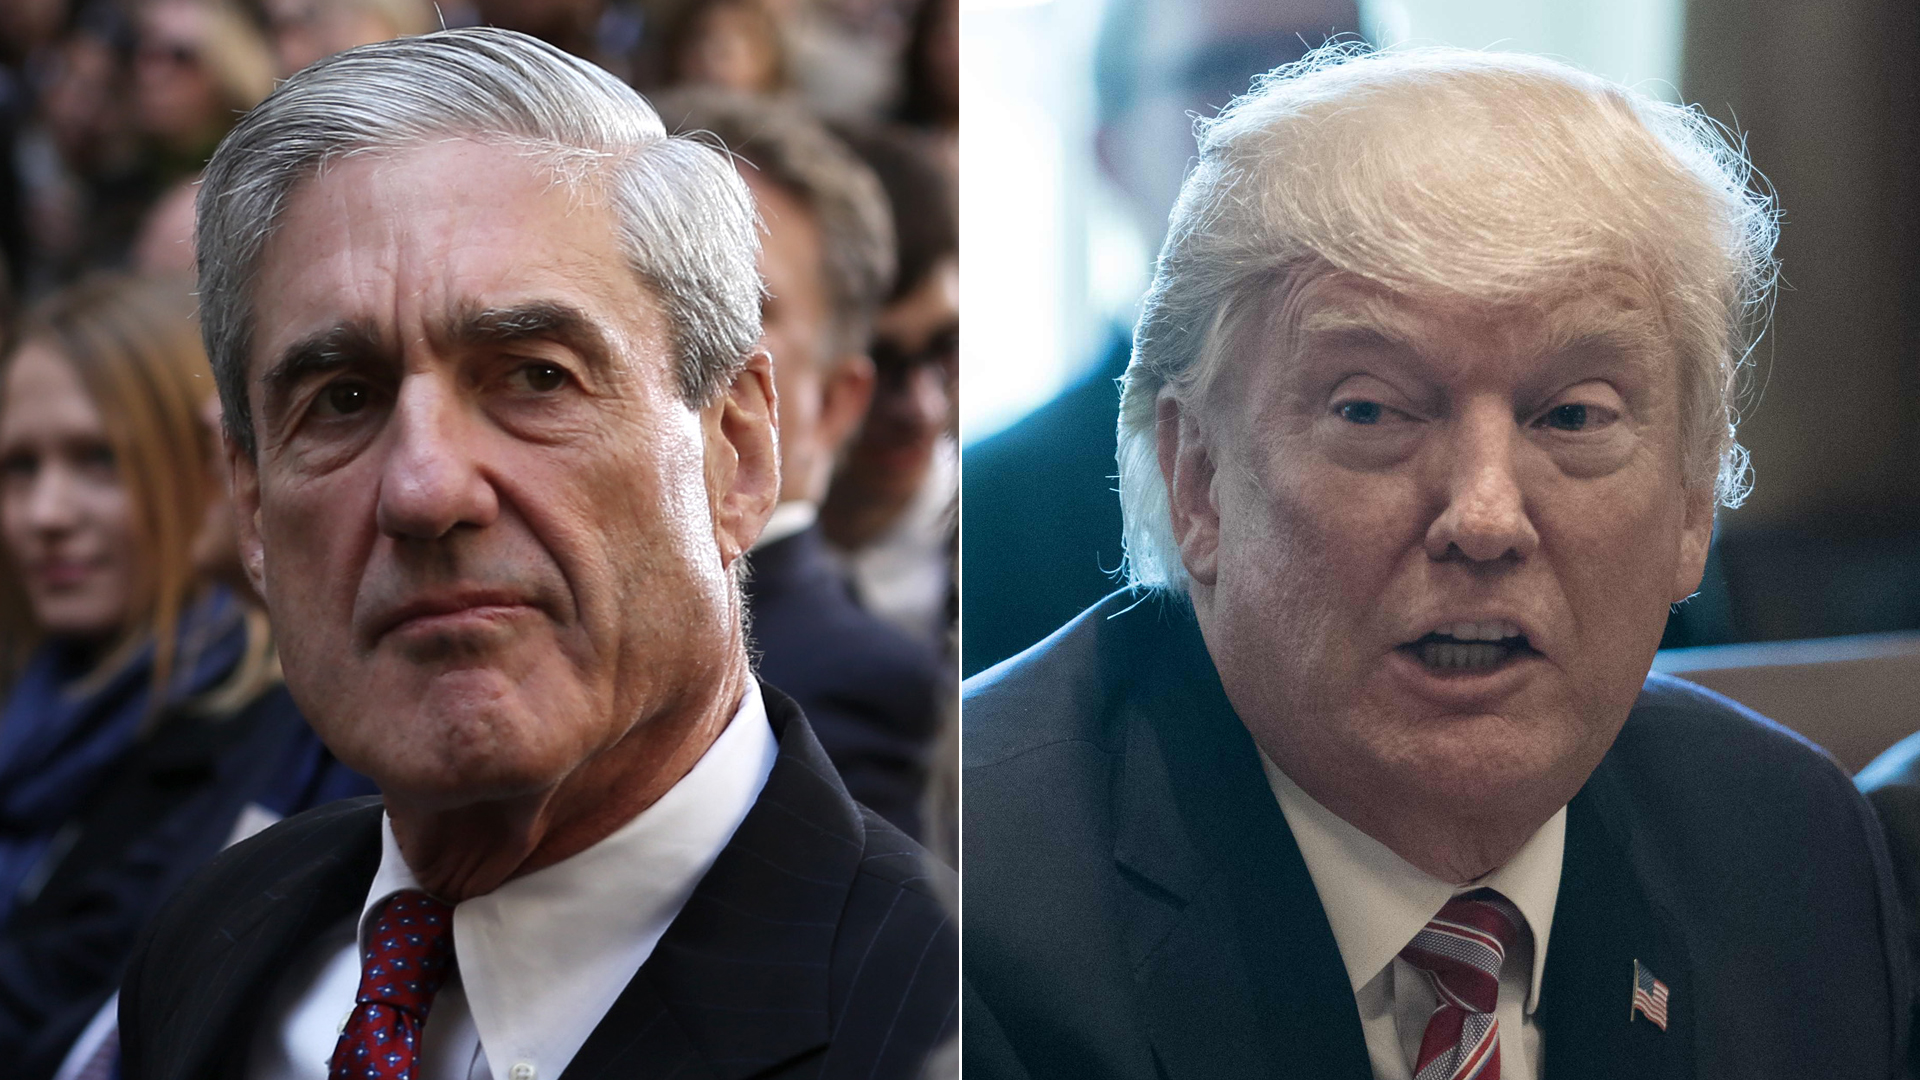 Former FBI director Robert Mueller attends the ceremonial swearing-in of FBI Director James Comey on Oct. 28, 2013, left. President Donald Trump speaks during a cabinet meeting at the White House on June 12, 2017 (Credit: Alex Wong/Getty Images; right, NICHOLAS KAMM/AFP/Getty Images)